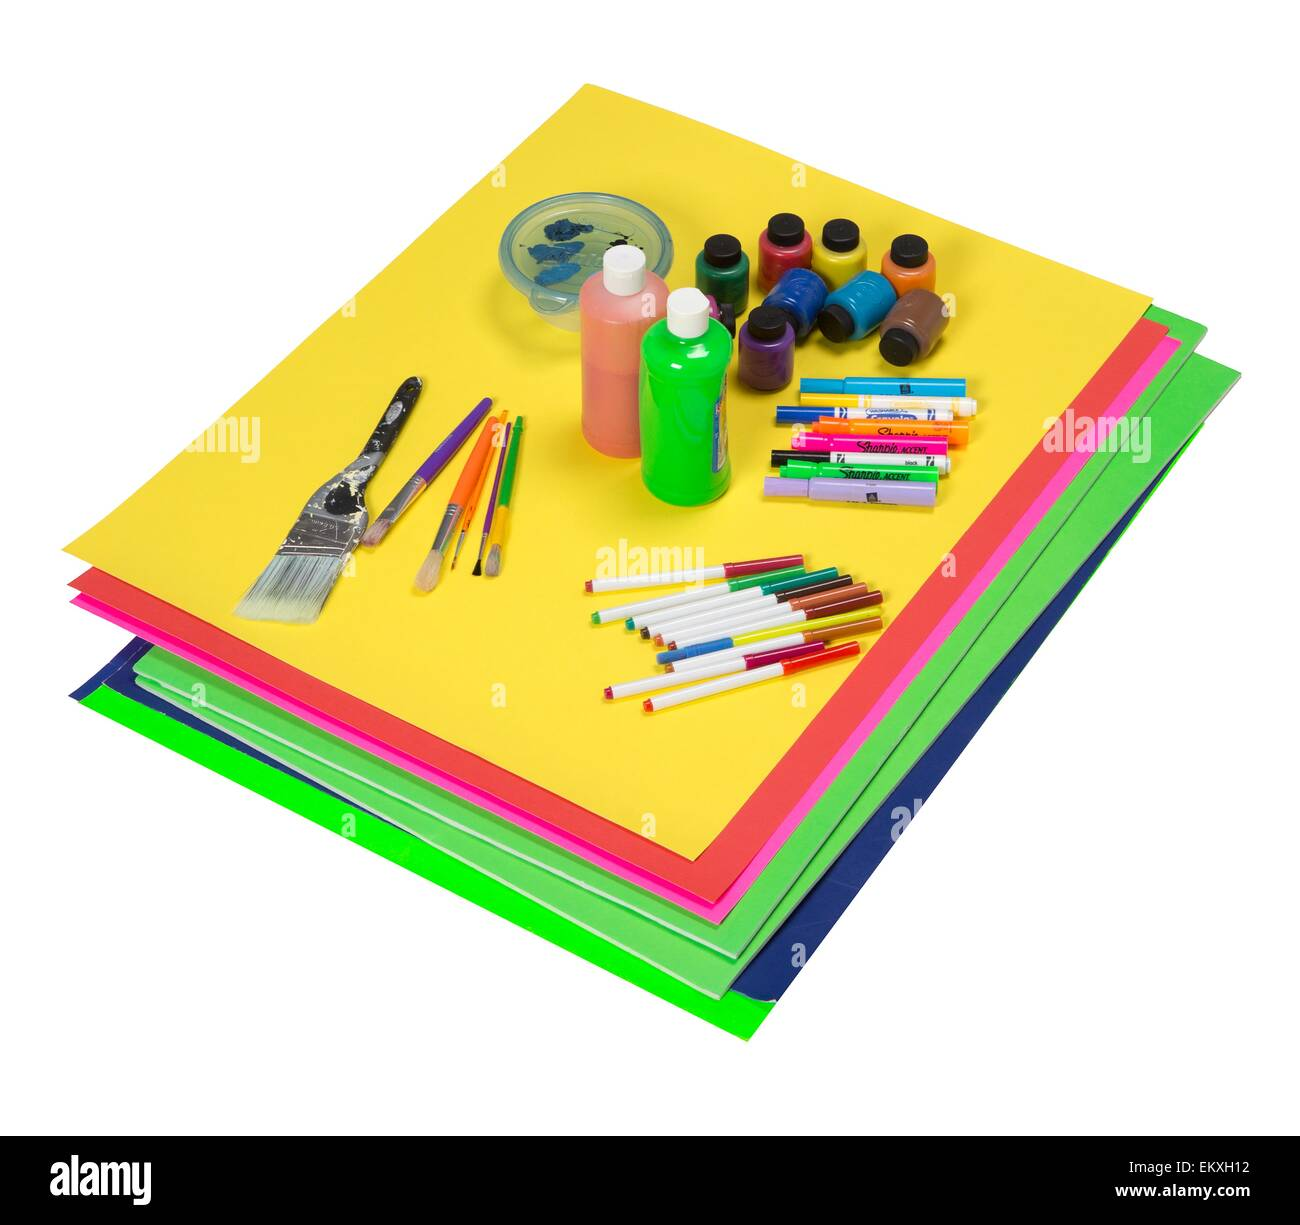 Art supplies which include colorful poster boards, paint, markers, and brushes - Stock Image